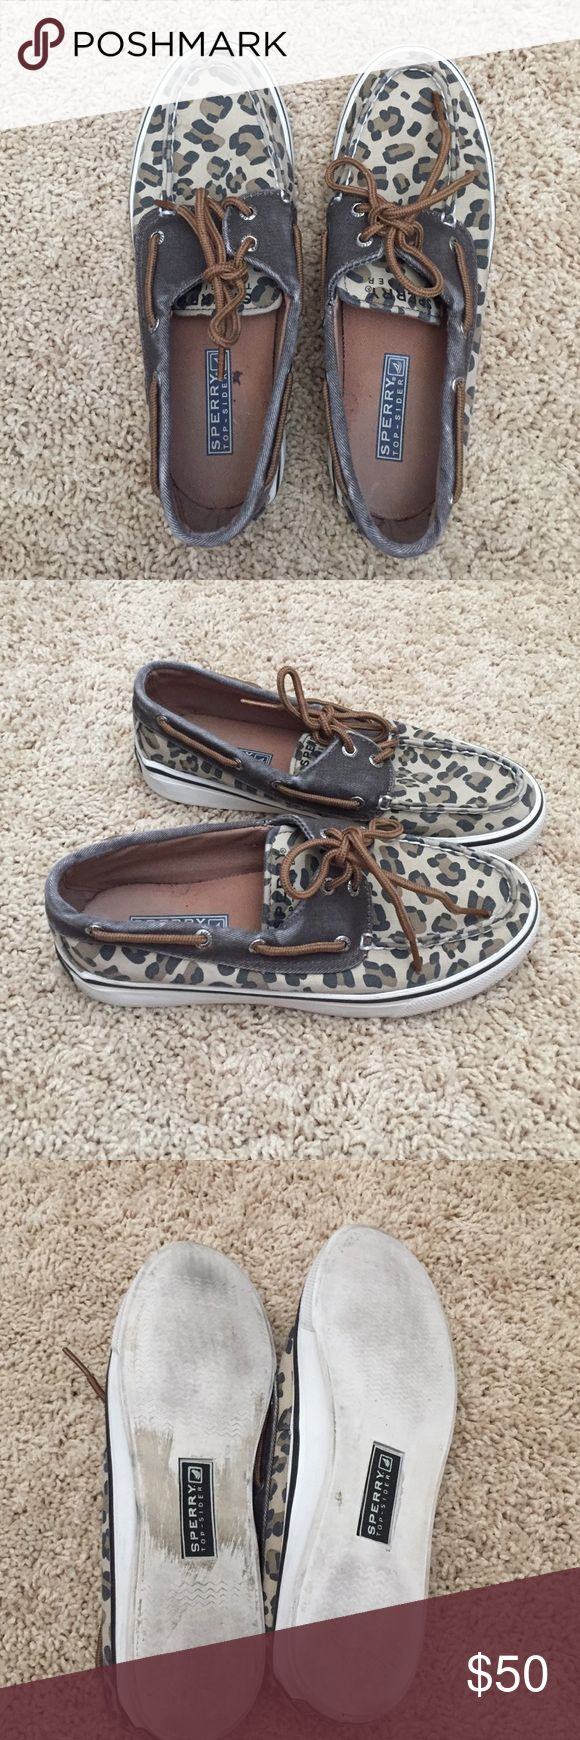 Leopard Sperry top-sider Great condition Sperry Top-Sider Shoes